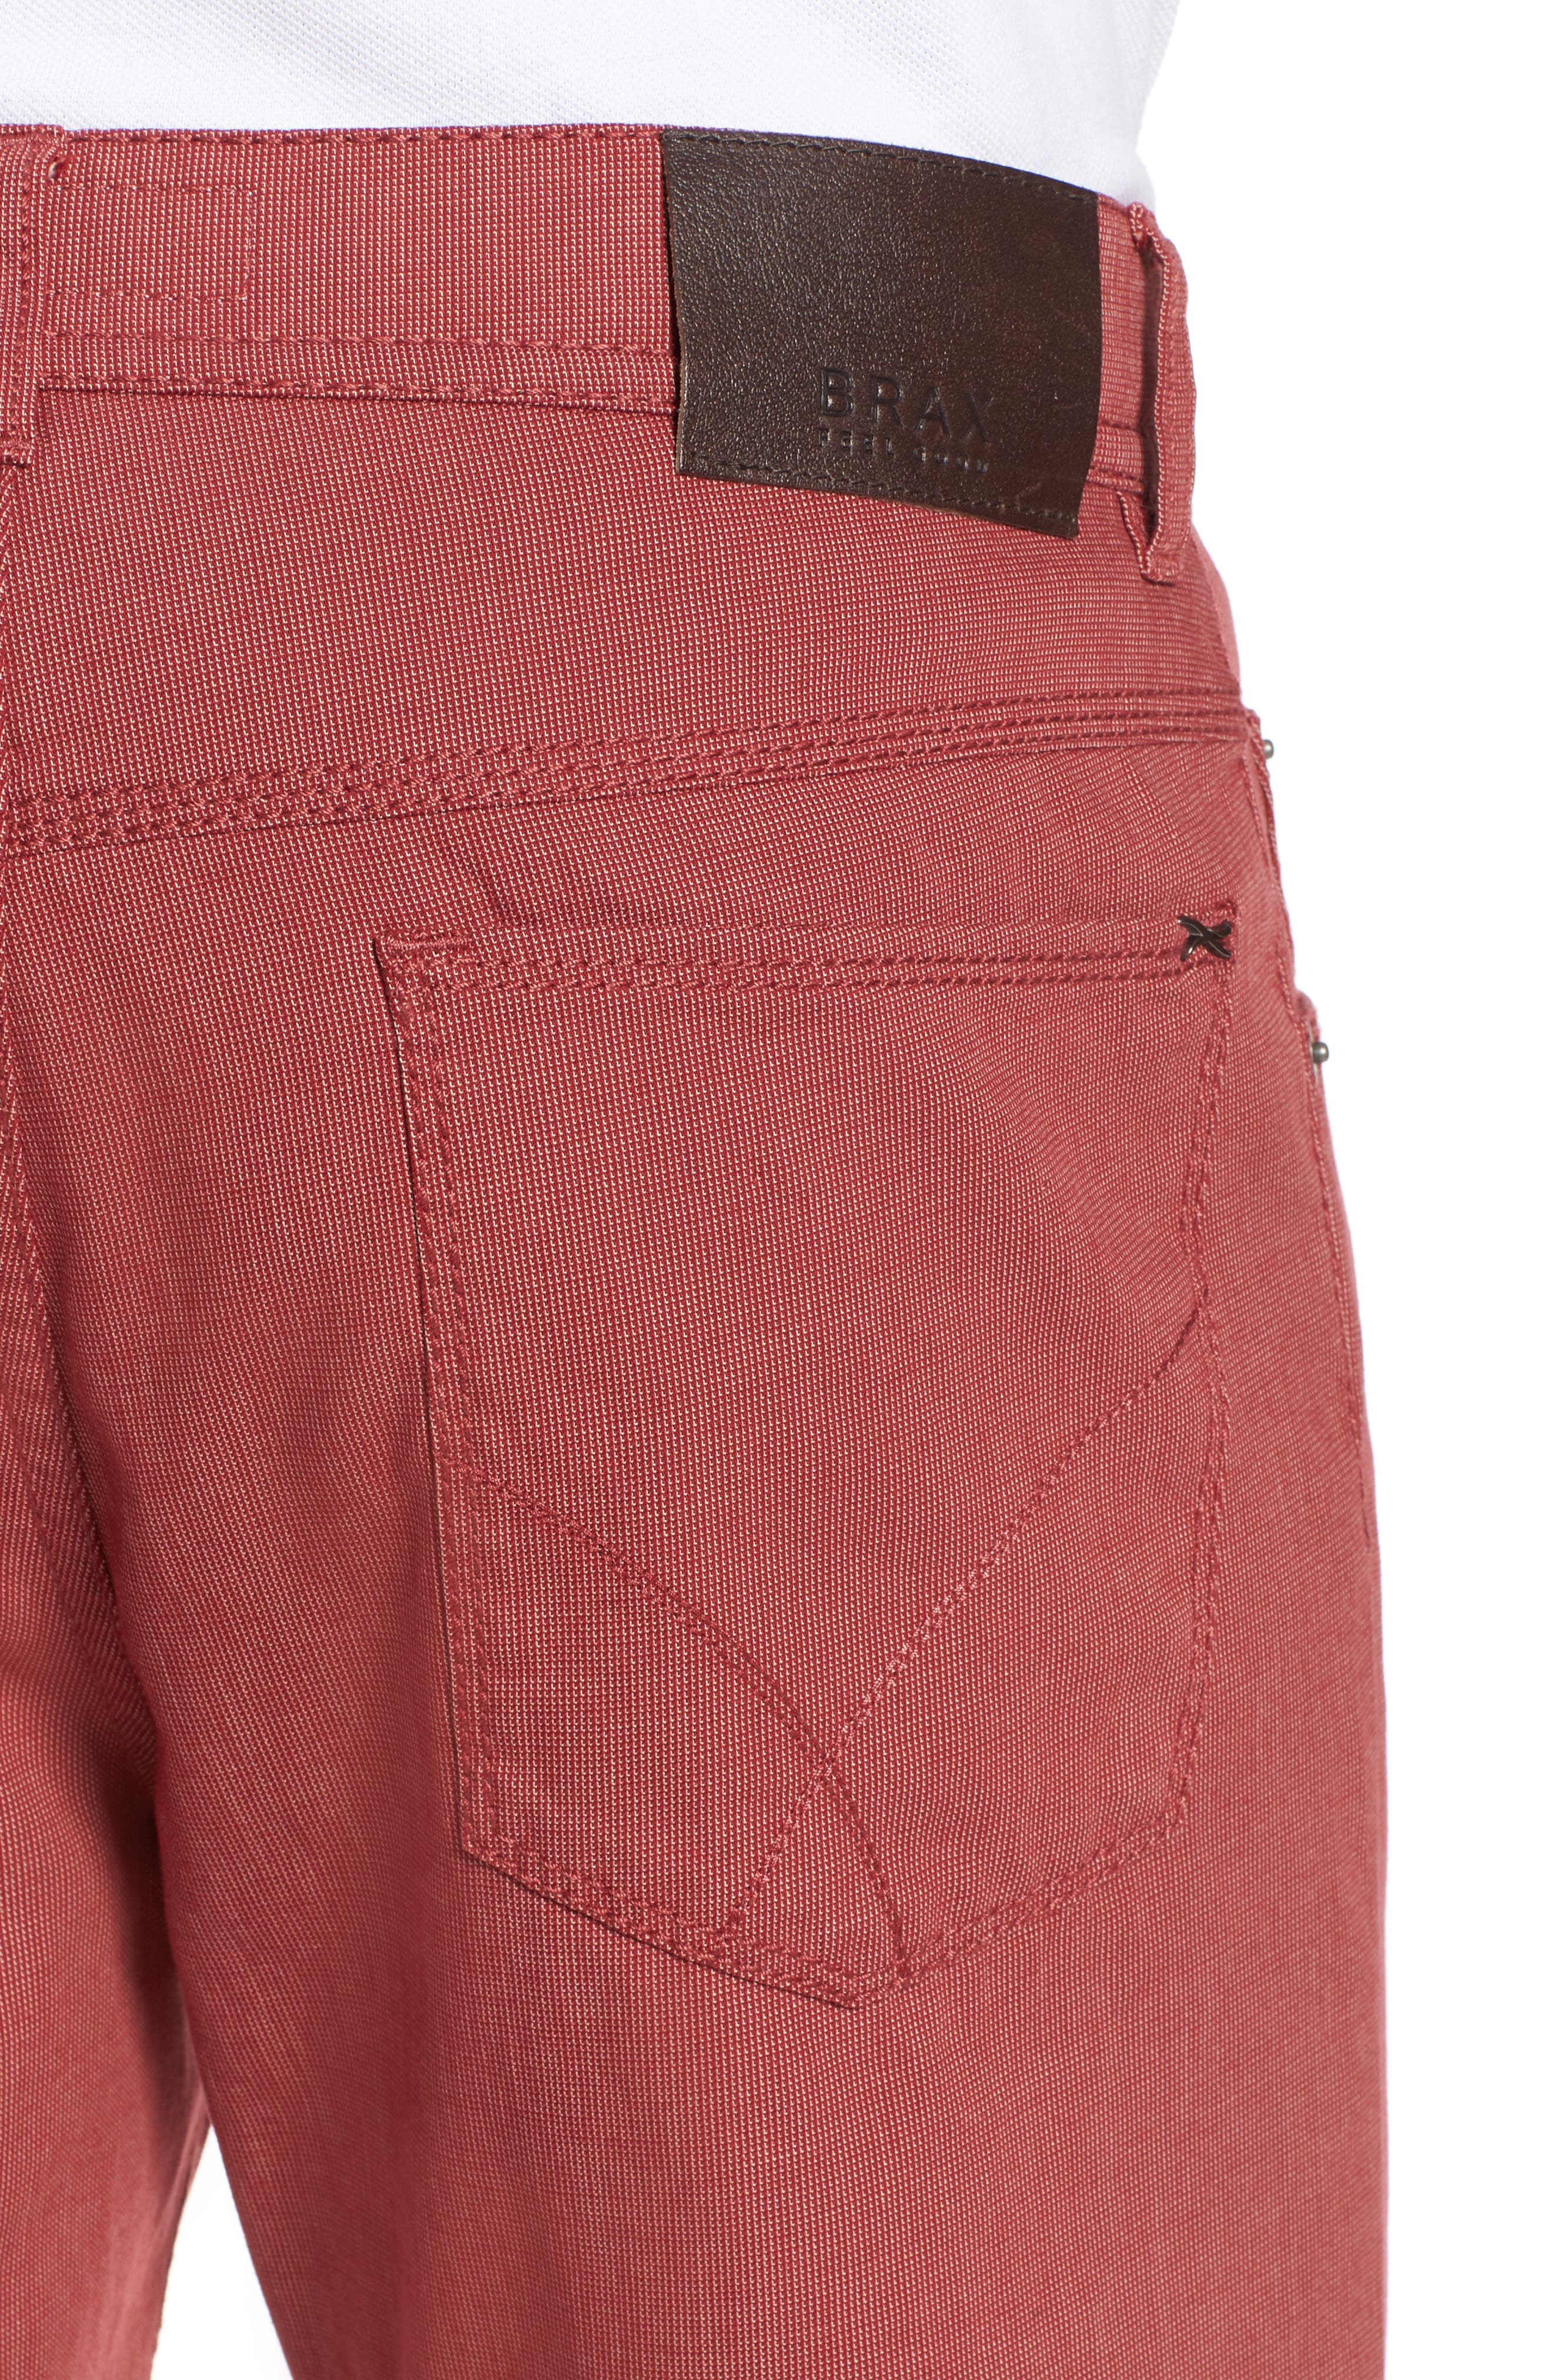 Sensation Stretch Trousers,                             Alternate thumbnail 4, color,                             Red